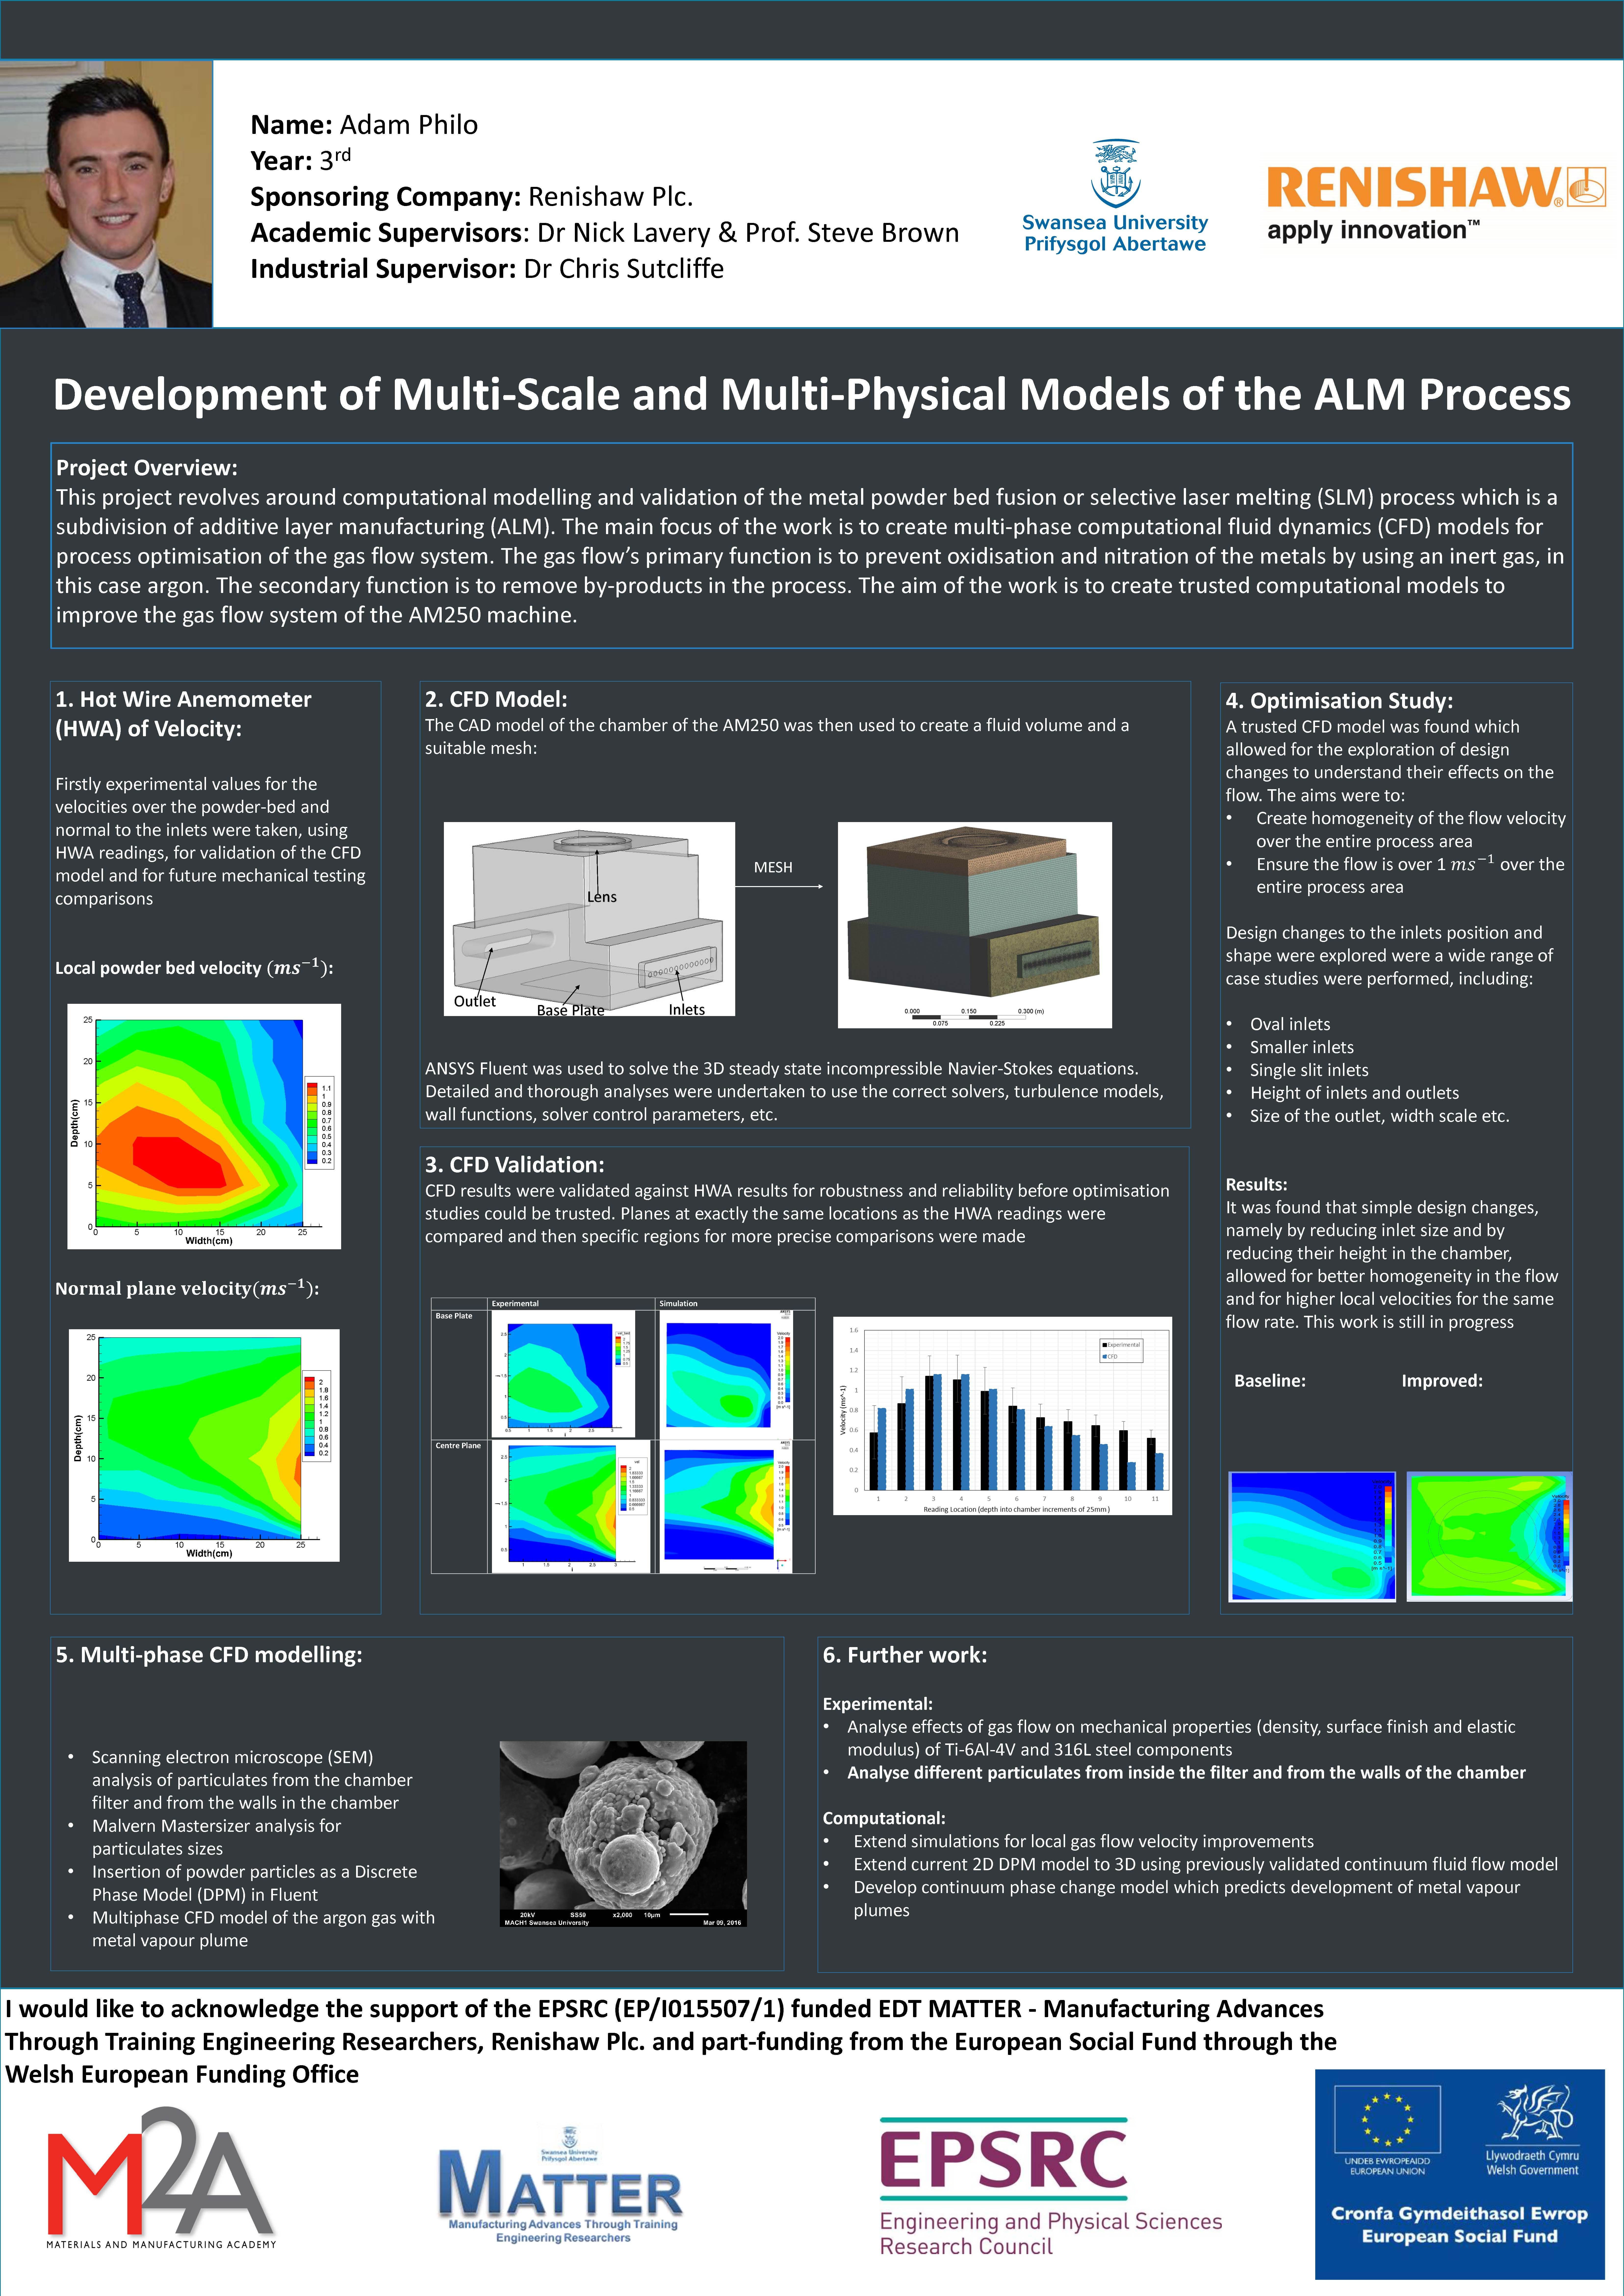 Development of Multi-Scale and Multi-Physical Models of the ALM Process